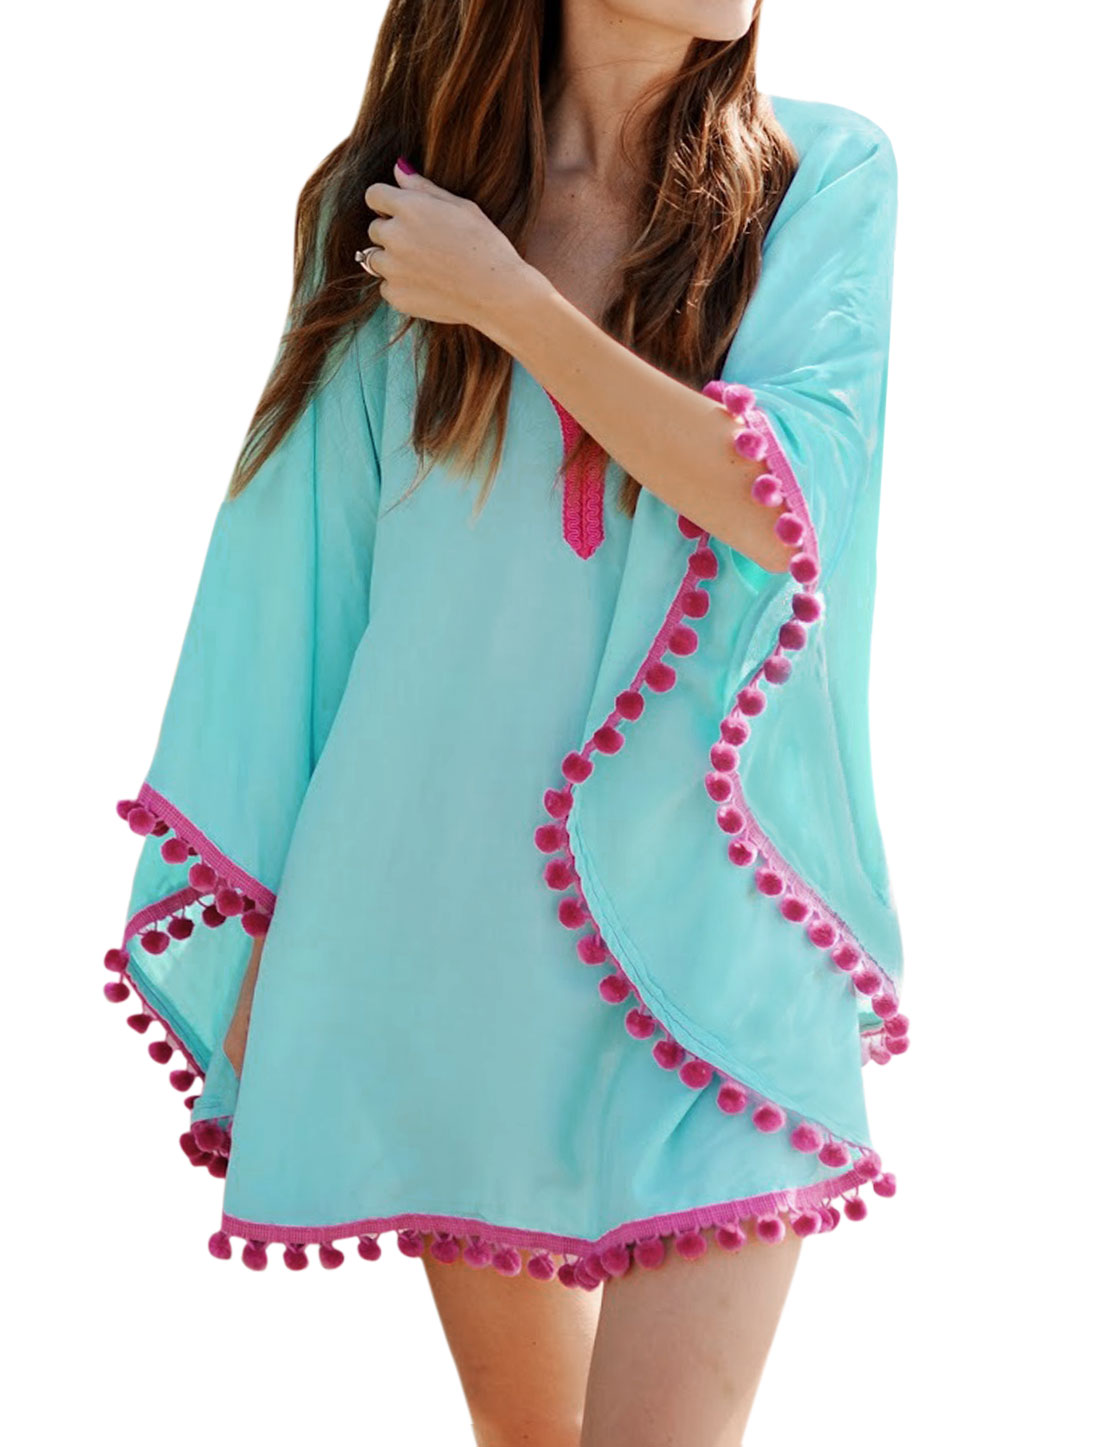 Women Pom-poms Trim Loose Fit Beach Cover-Up Tunic Top Blue XS